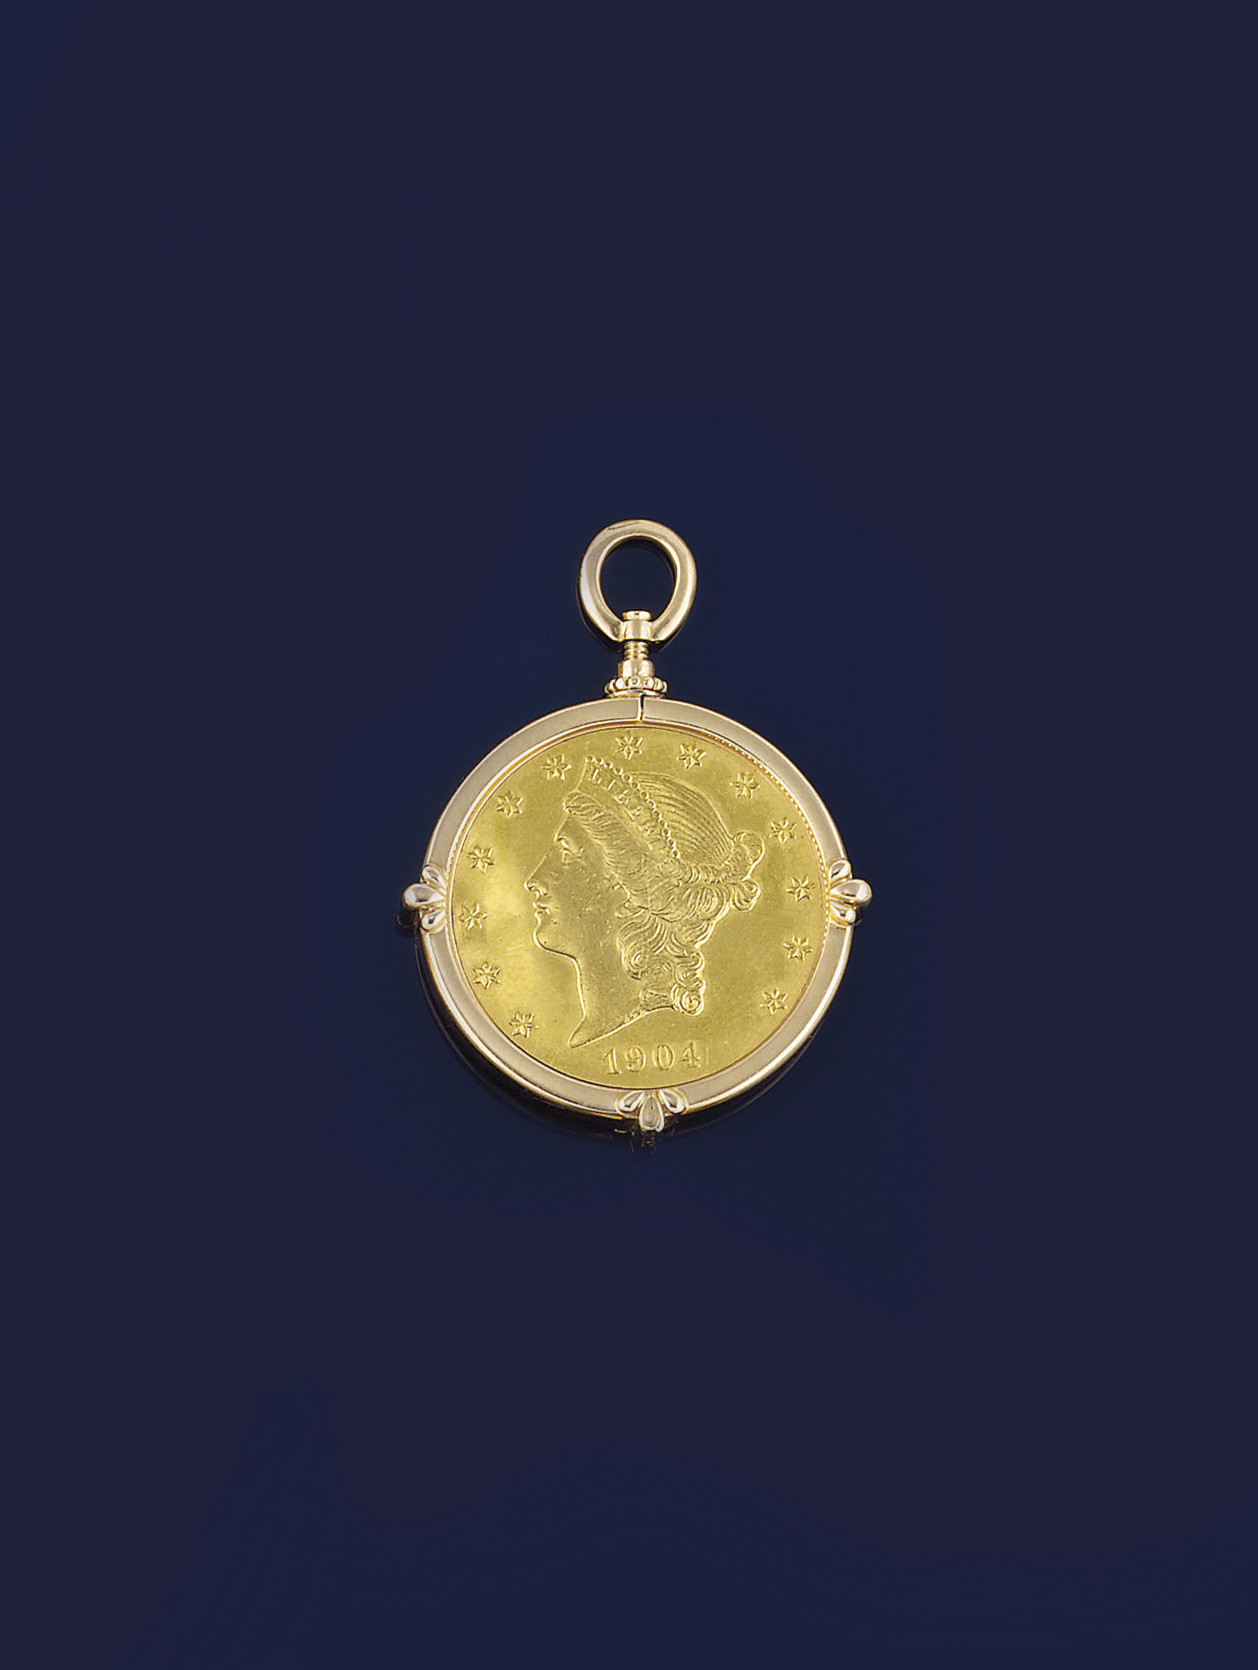 A 20 Dollar coin watch, by Bou